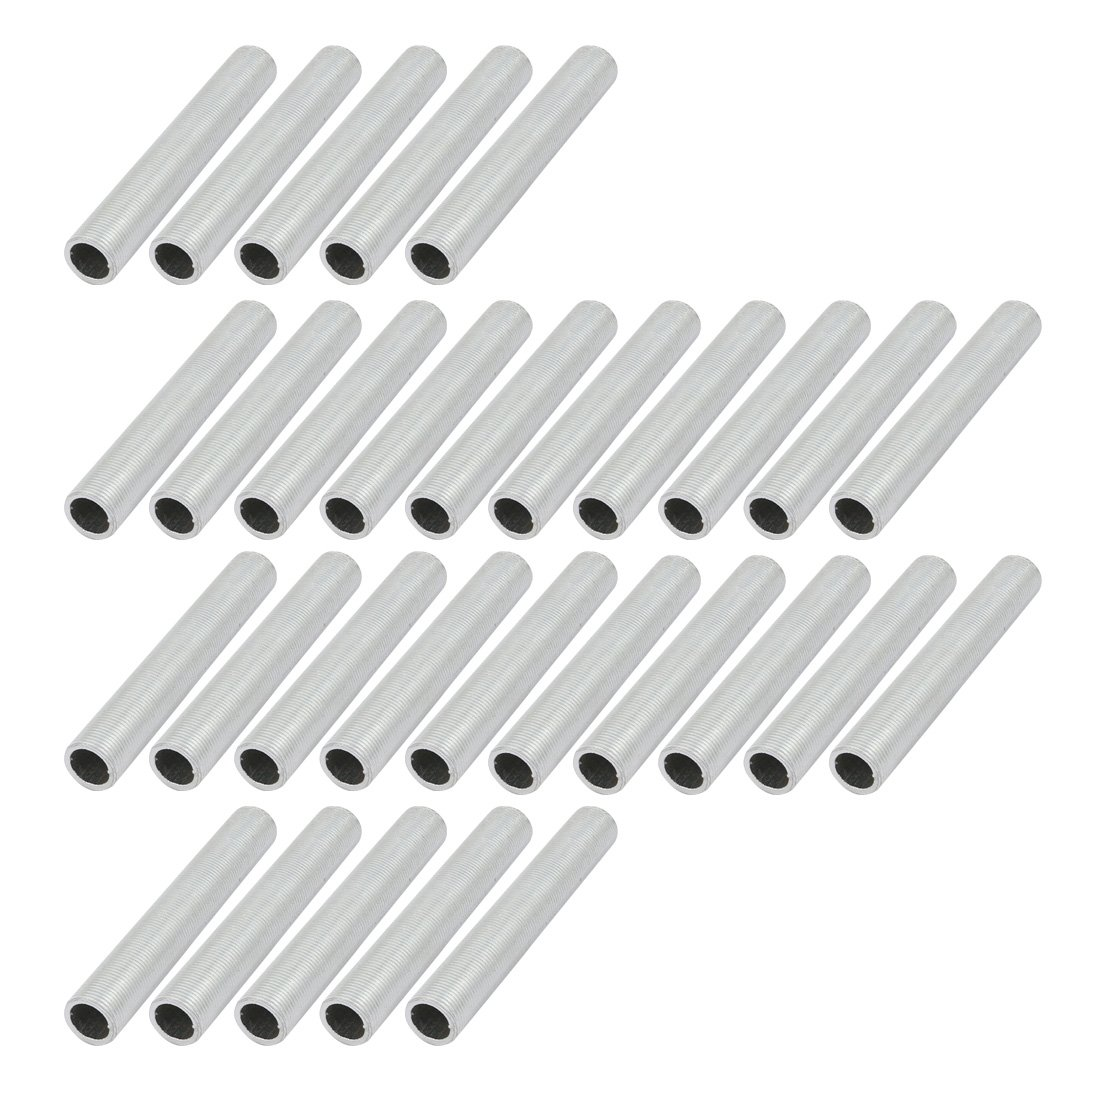 uxcell 30 Pcs Metric M14 1mm Pitch Thread Zinc Plated Pipe Nipple Lamp Parts 90mm Long